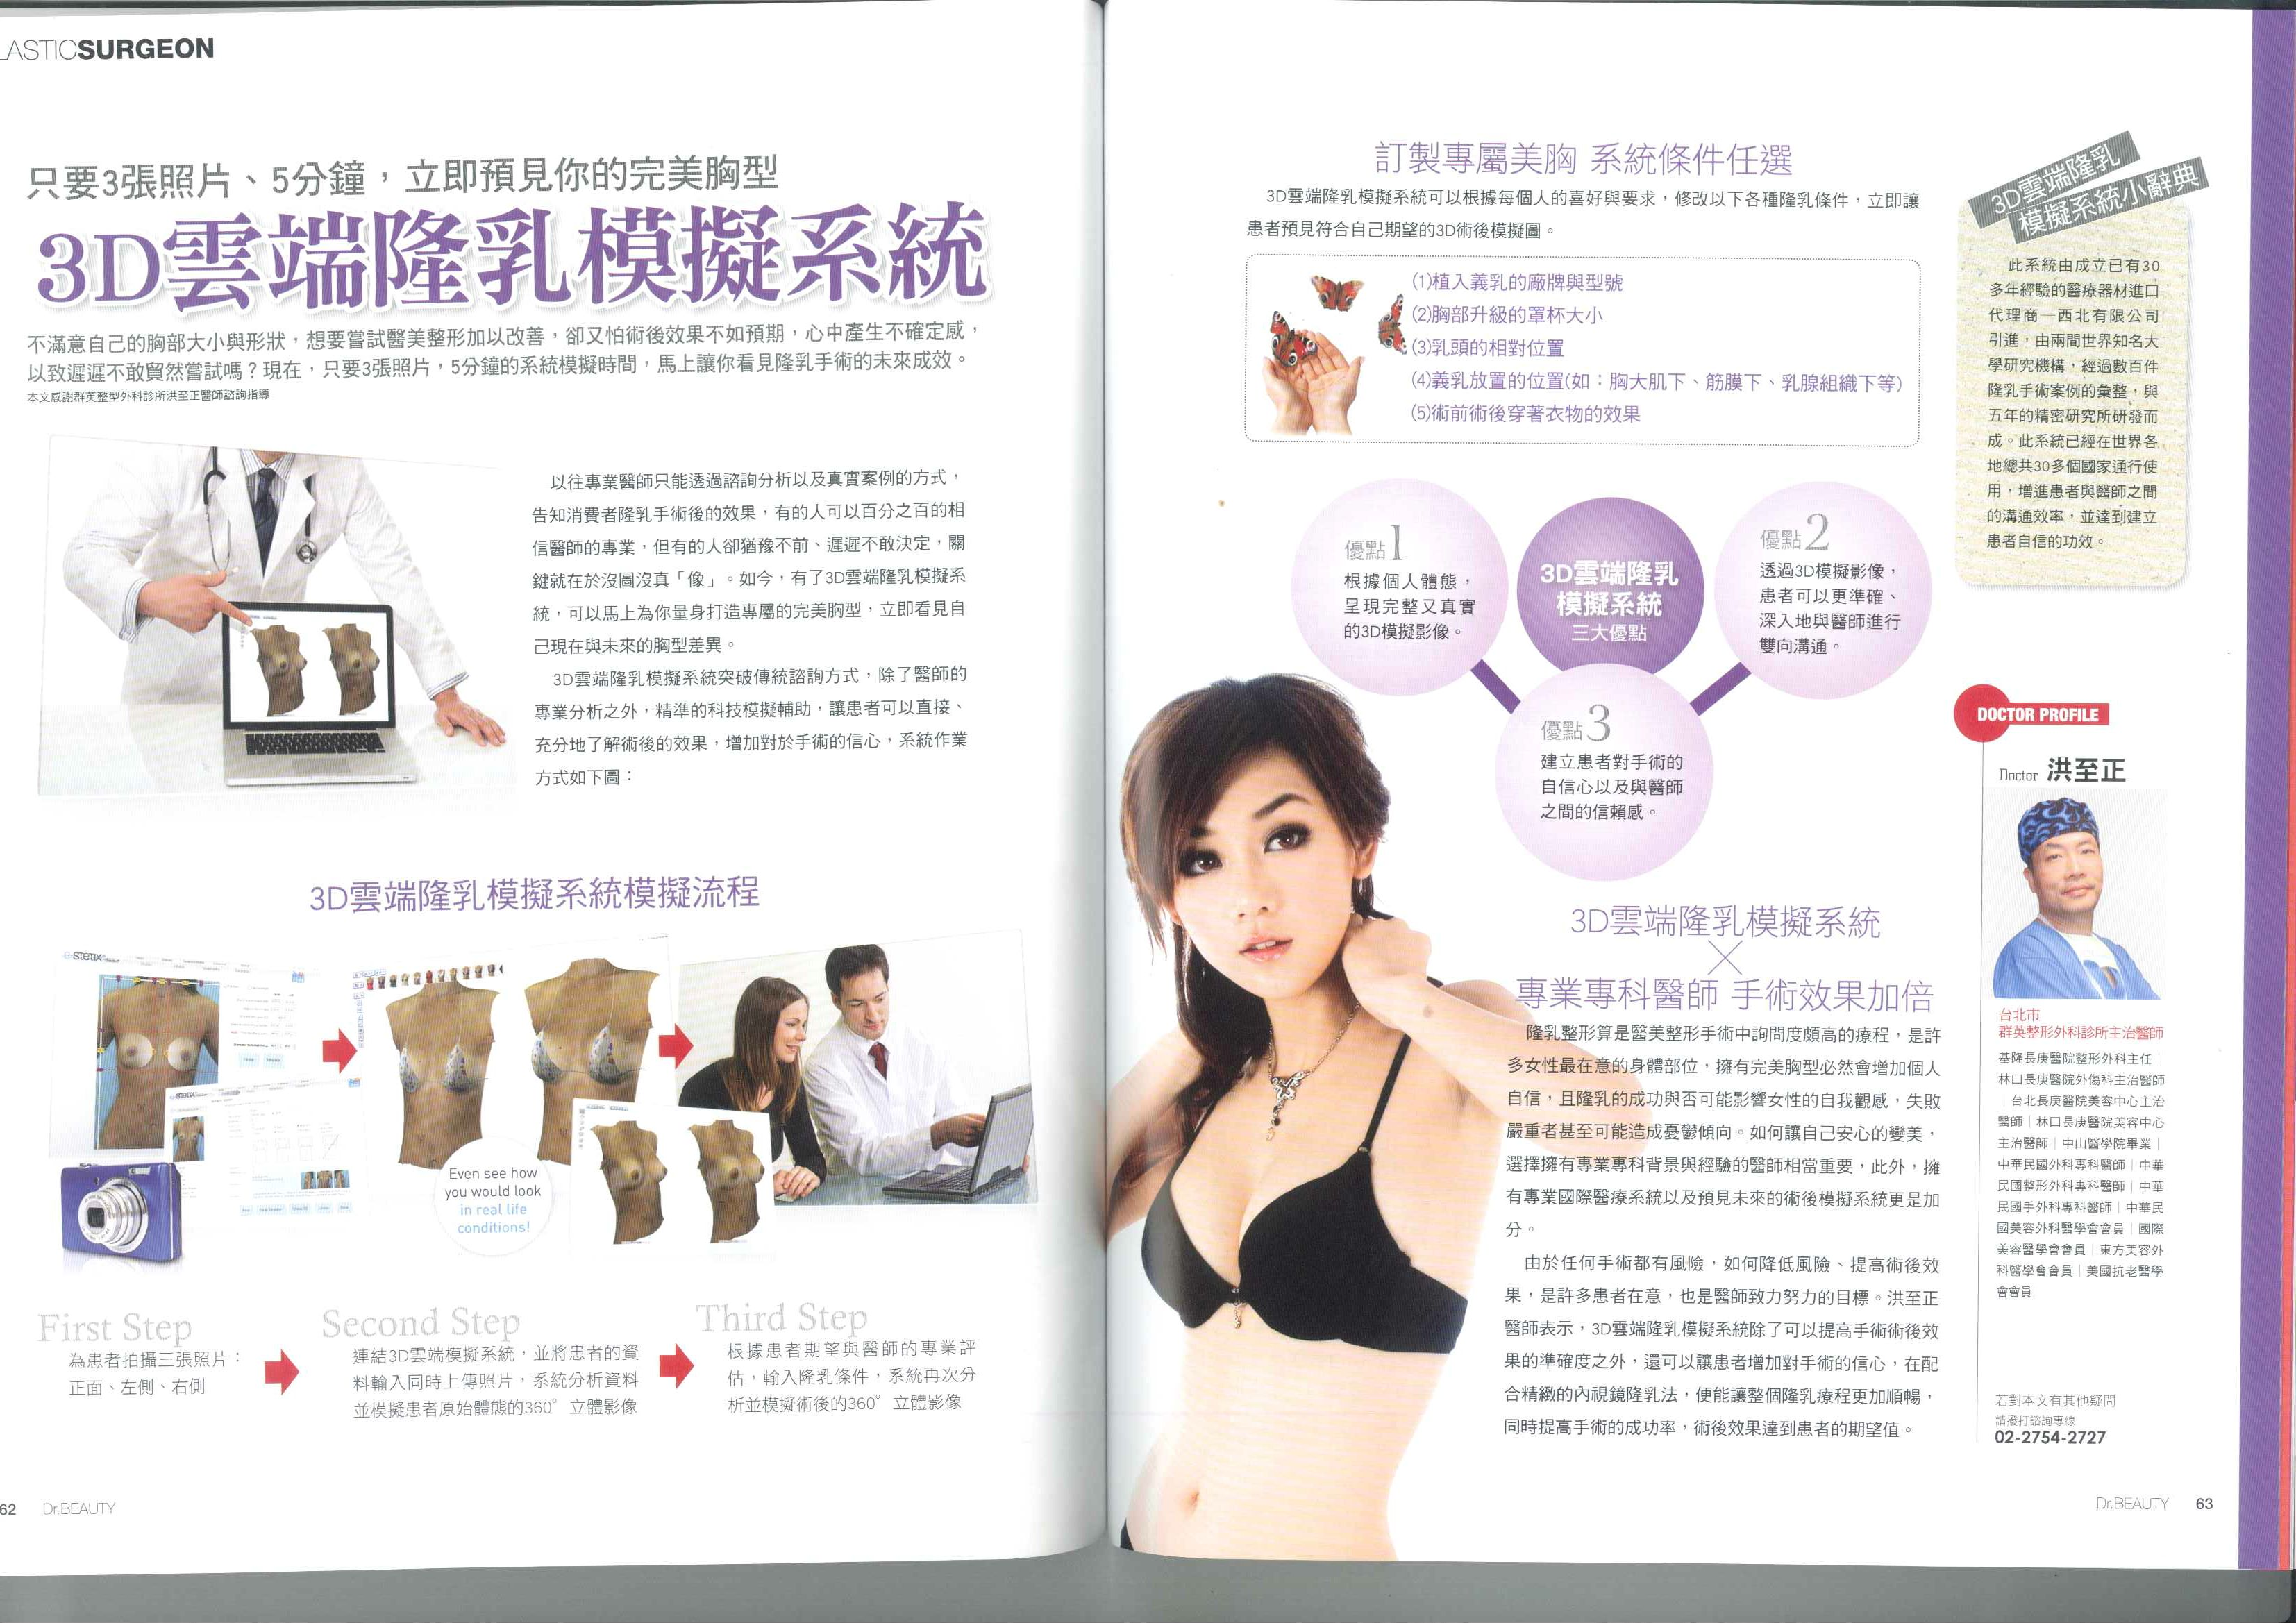 Dr beauty feb 2012